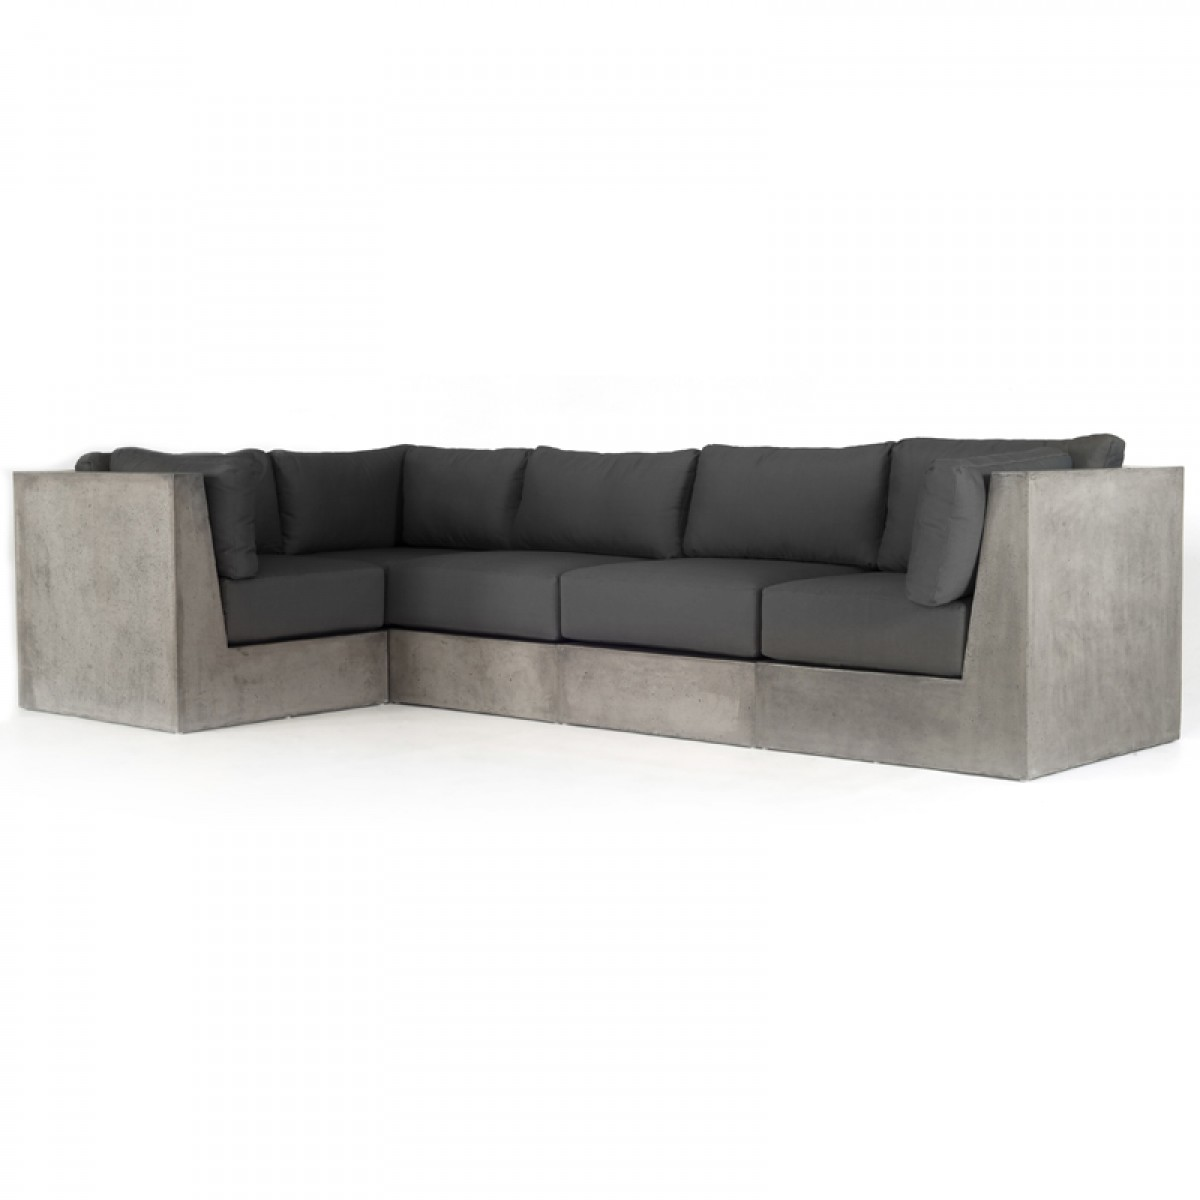 Modrest Indigo Contemporary Grey Concrete Sectional Sofa  : gr indigo 2 from www.vigfurniture.com size 1200 x 1200 jpeg 72kB